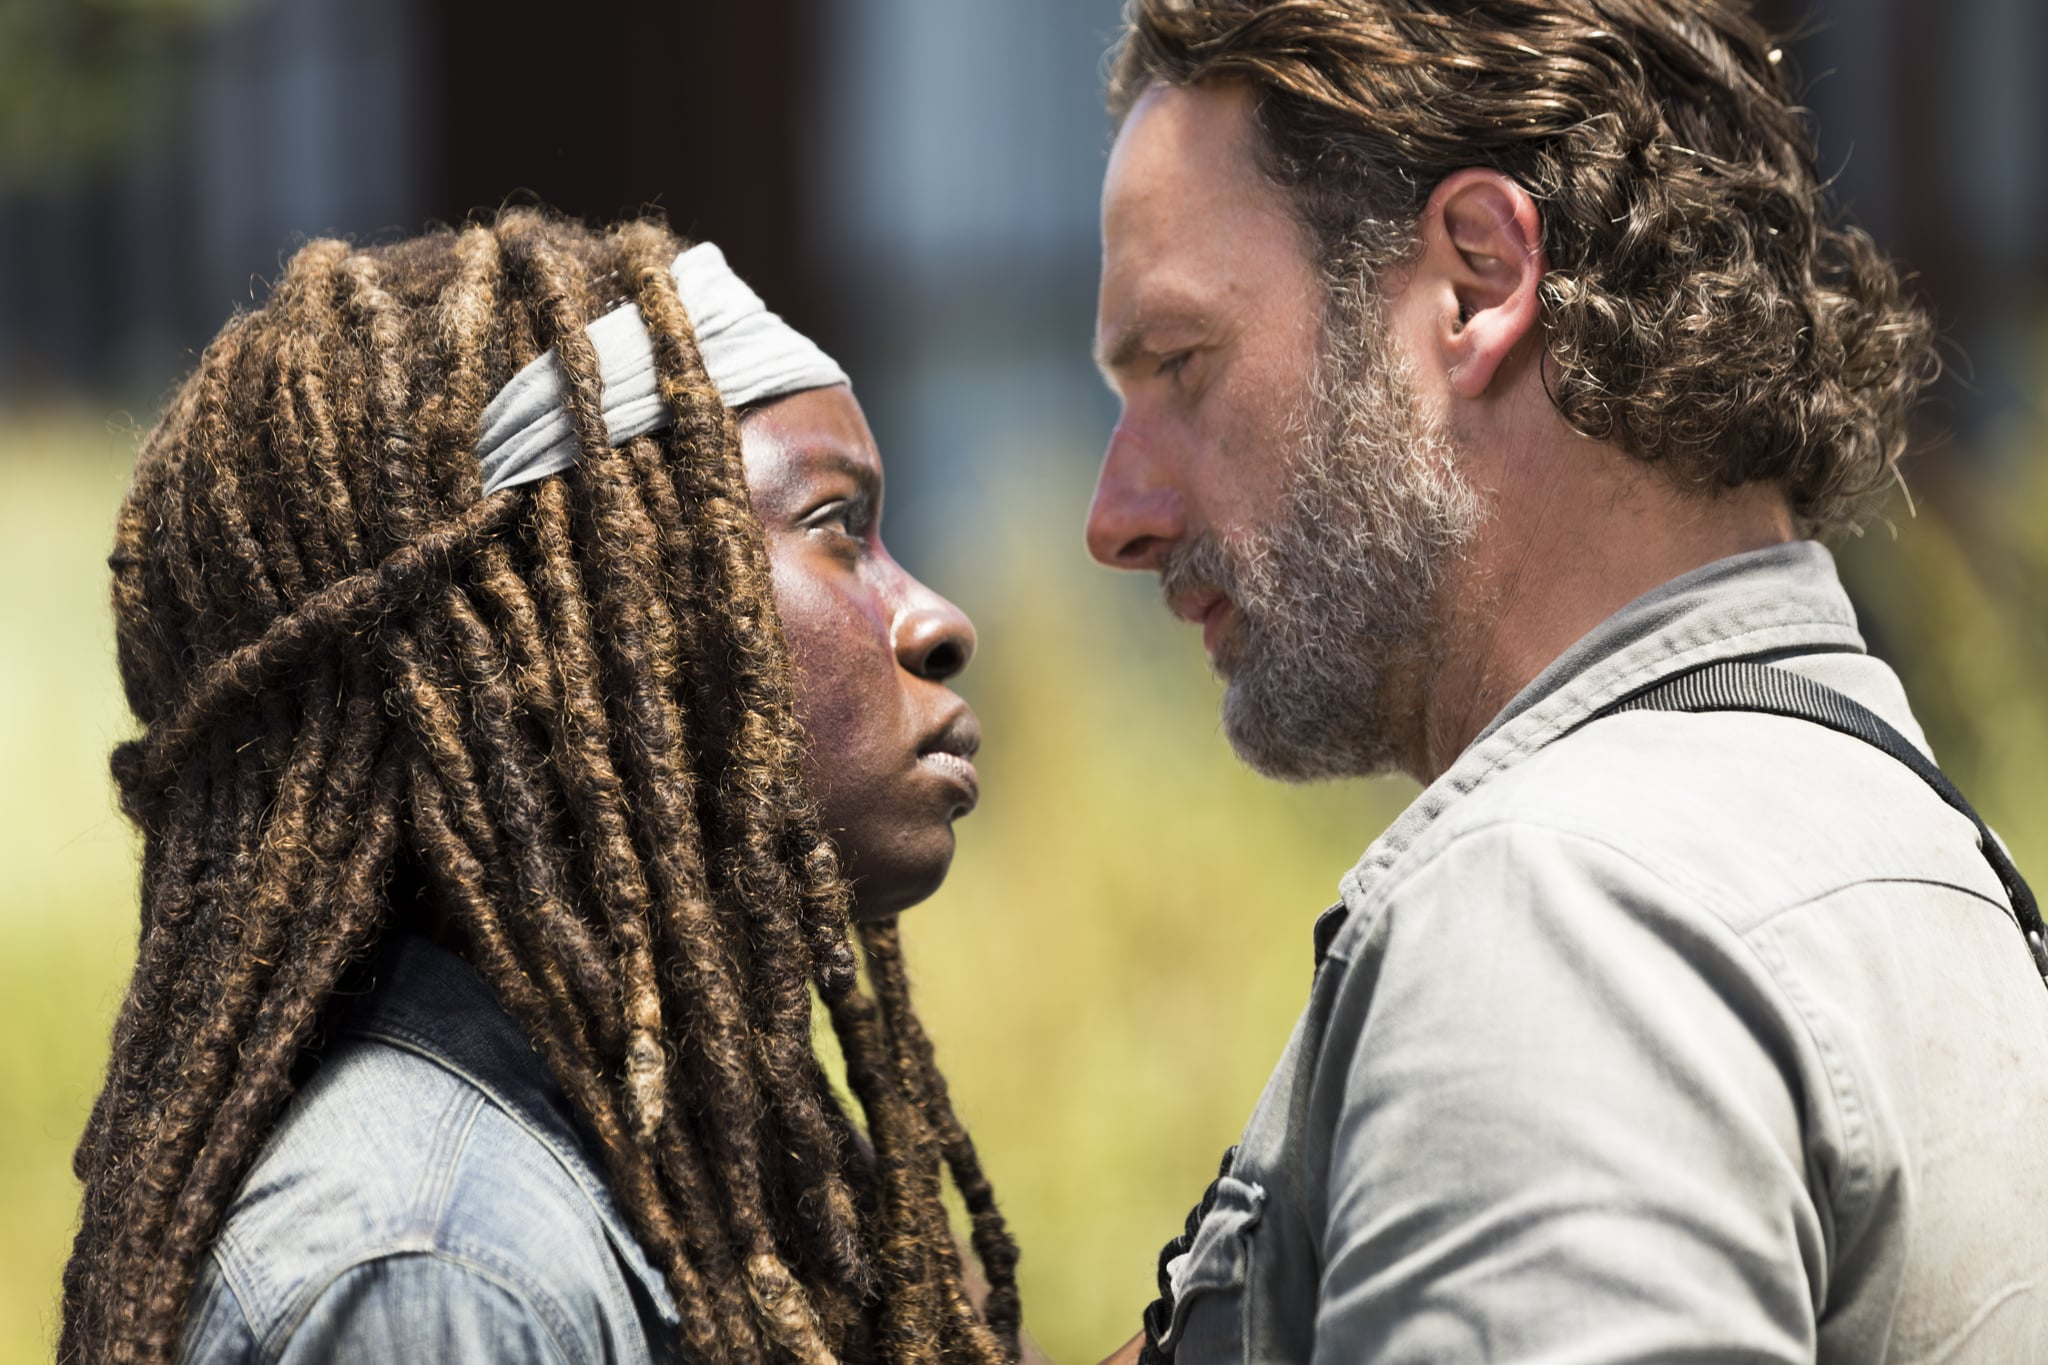 AMC's WALKING DEAD Audience Drops 35% From Last Season Premiere""